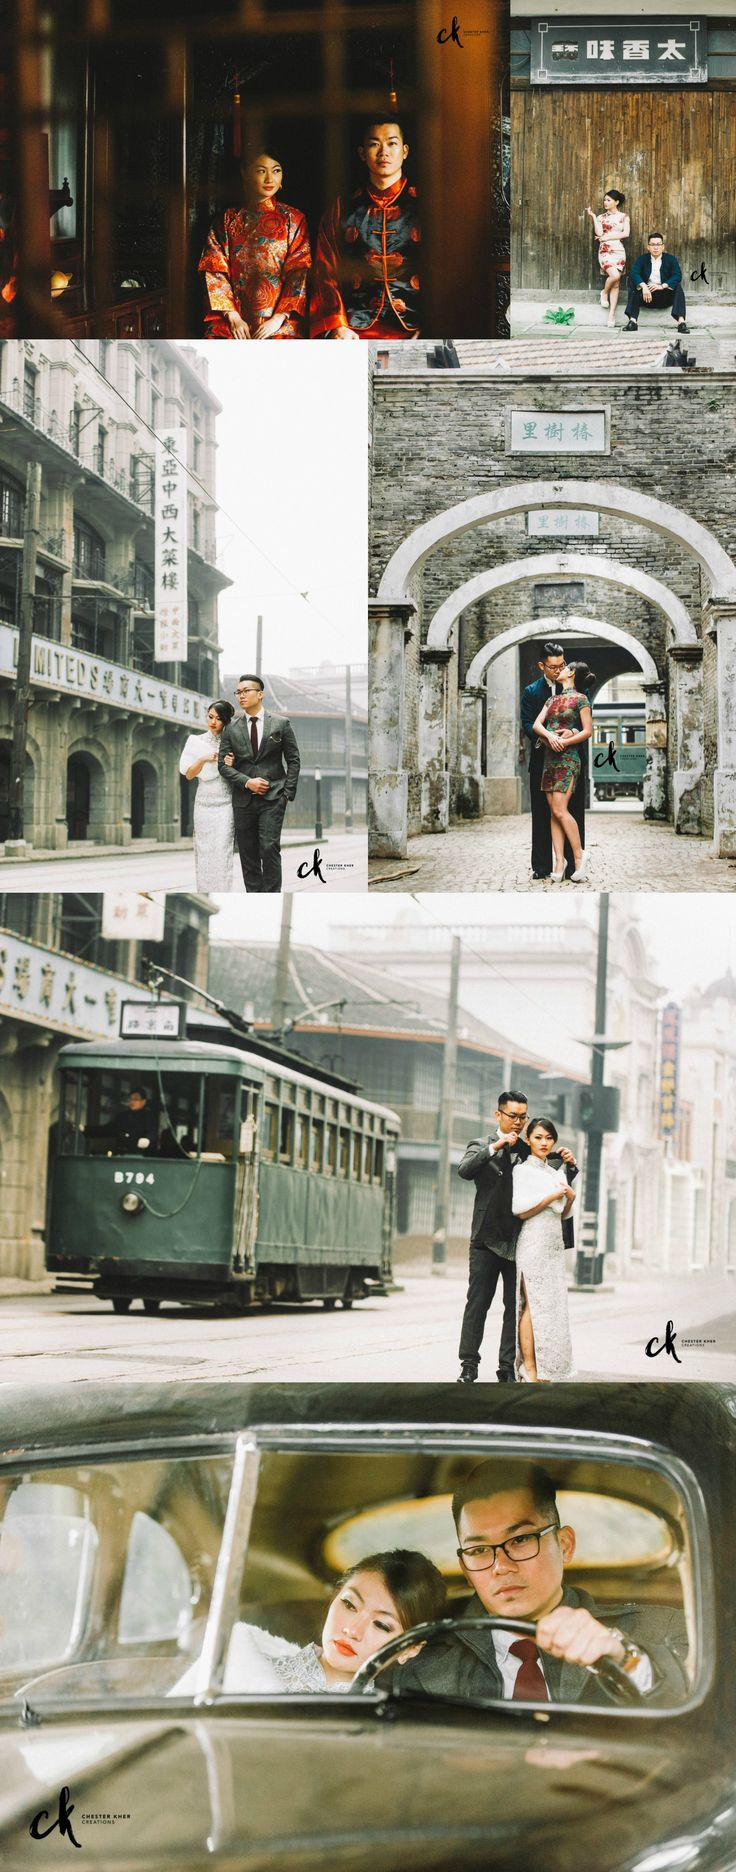 Theme // Shanghai 1930s' Pre-Wedding Location // Shanghai, China Photography // Chester Kher Creations, International Wedding & Portraits Photography based in Kuala Lumpur & Shanghai.